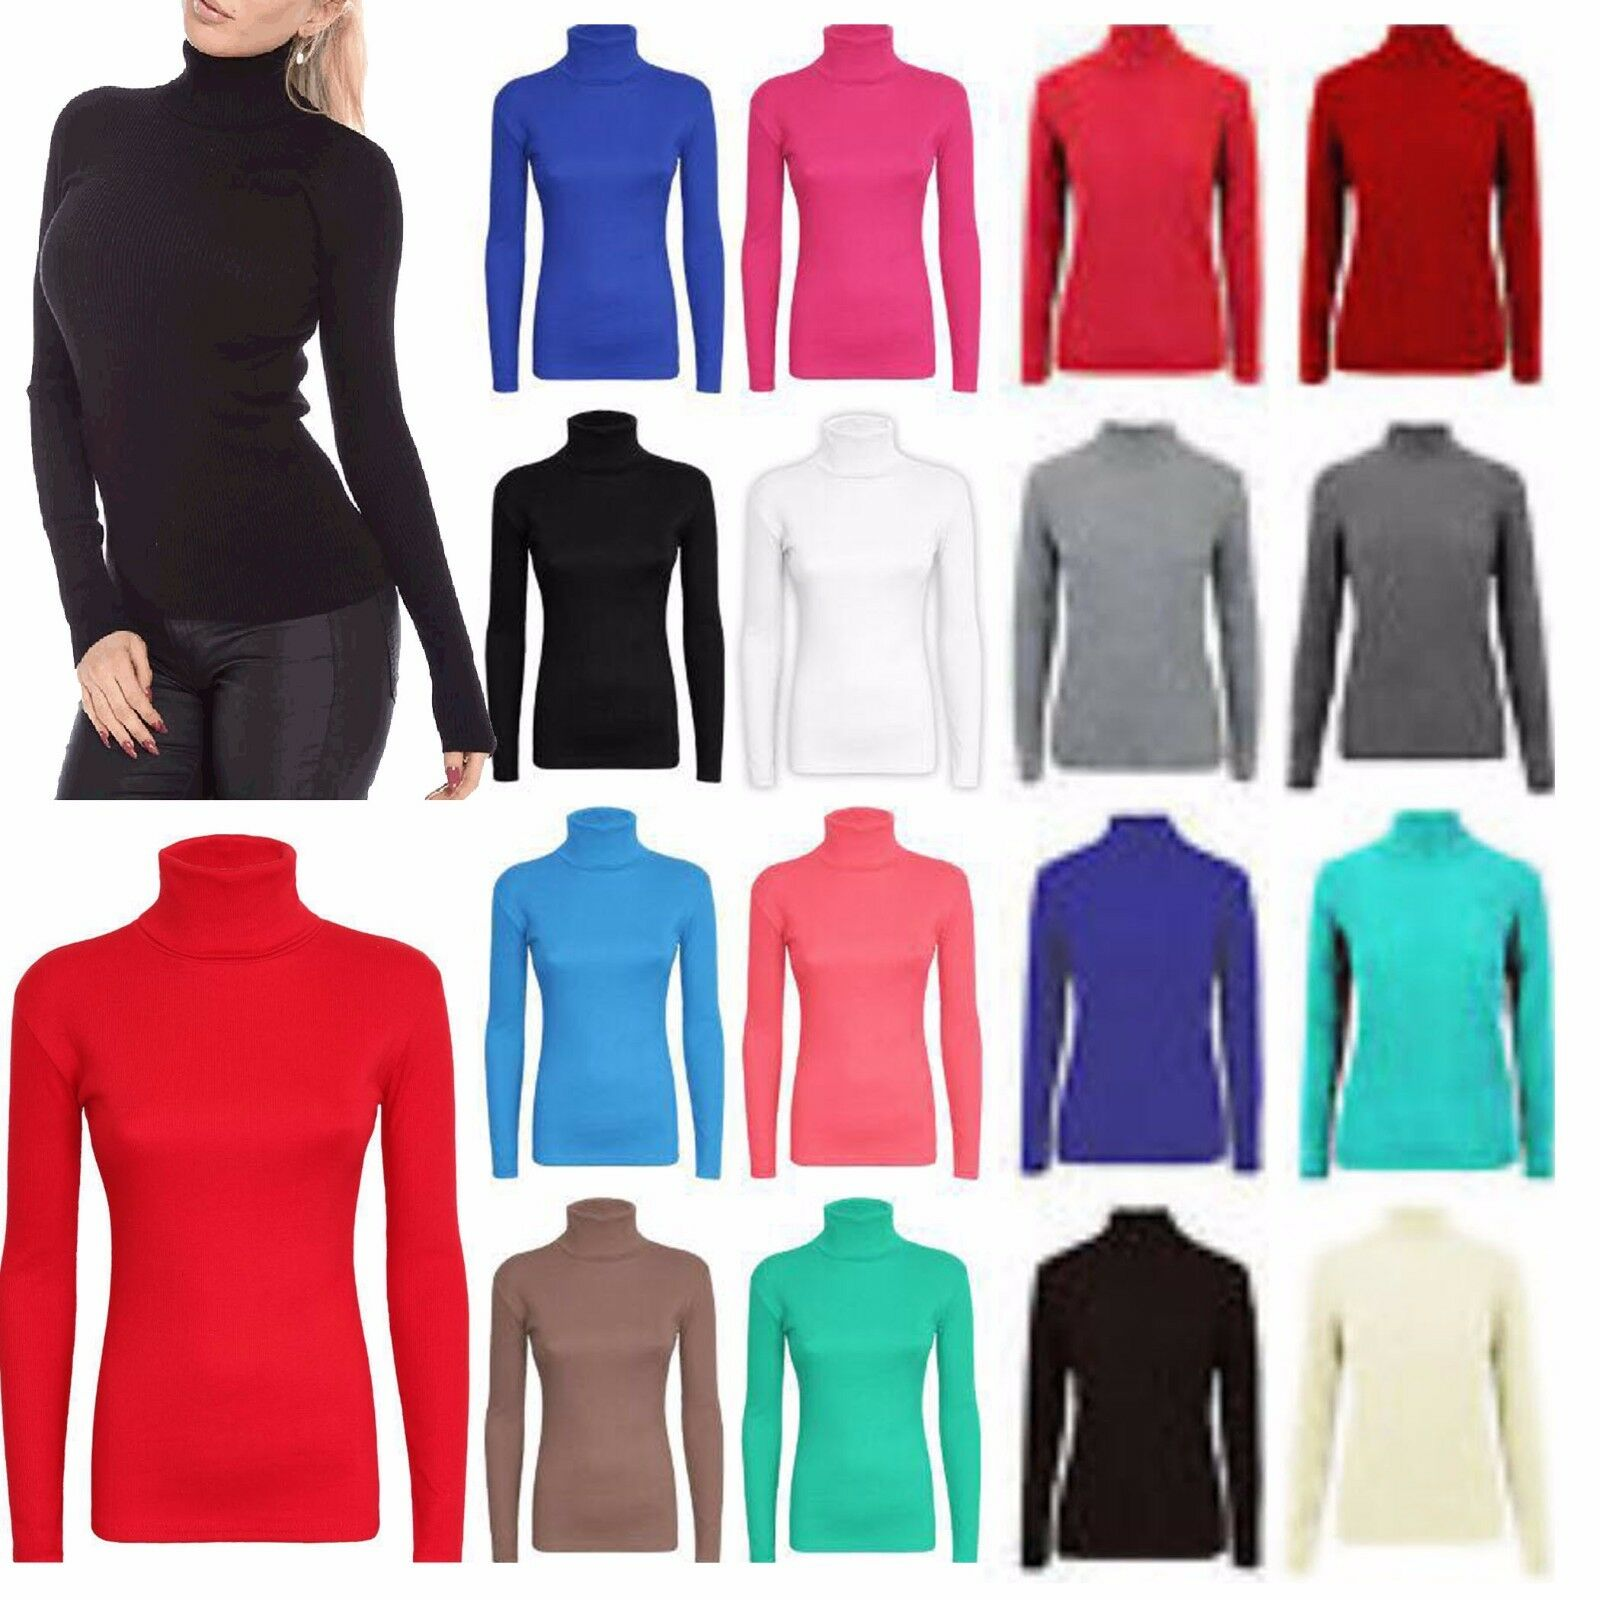 LADIES SKINNY RIB COTTON POLONECK TOP WOMEN COTTON LONG SLEEVE ROLL NECK TOP S-L